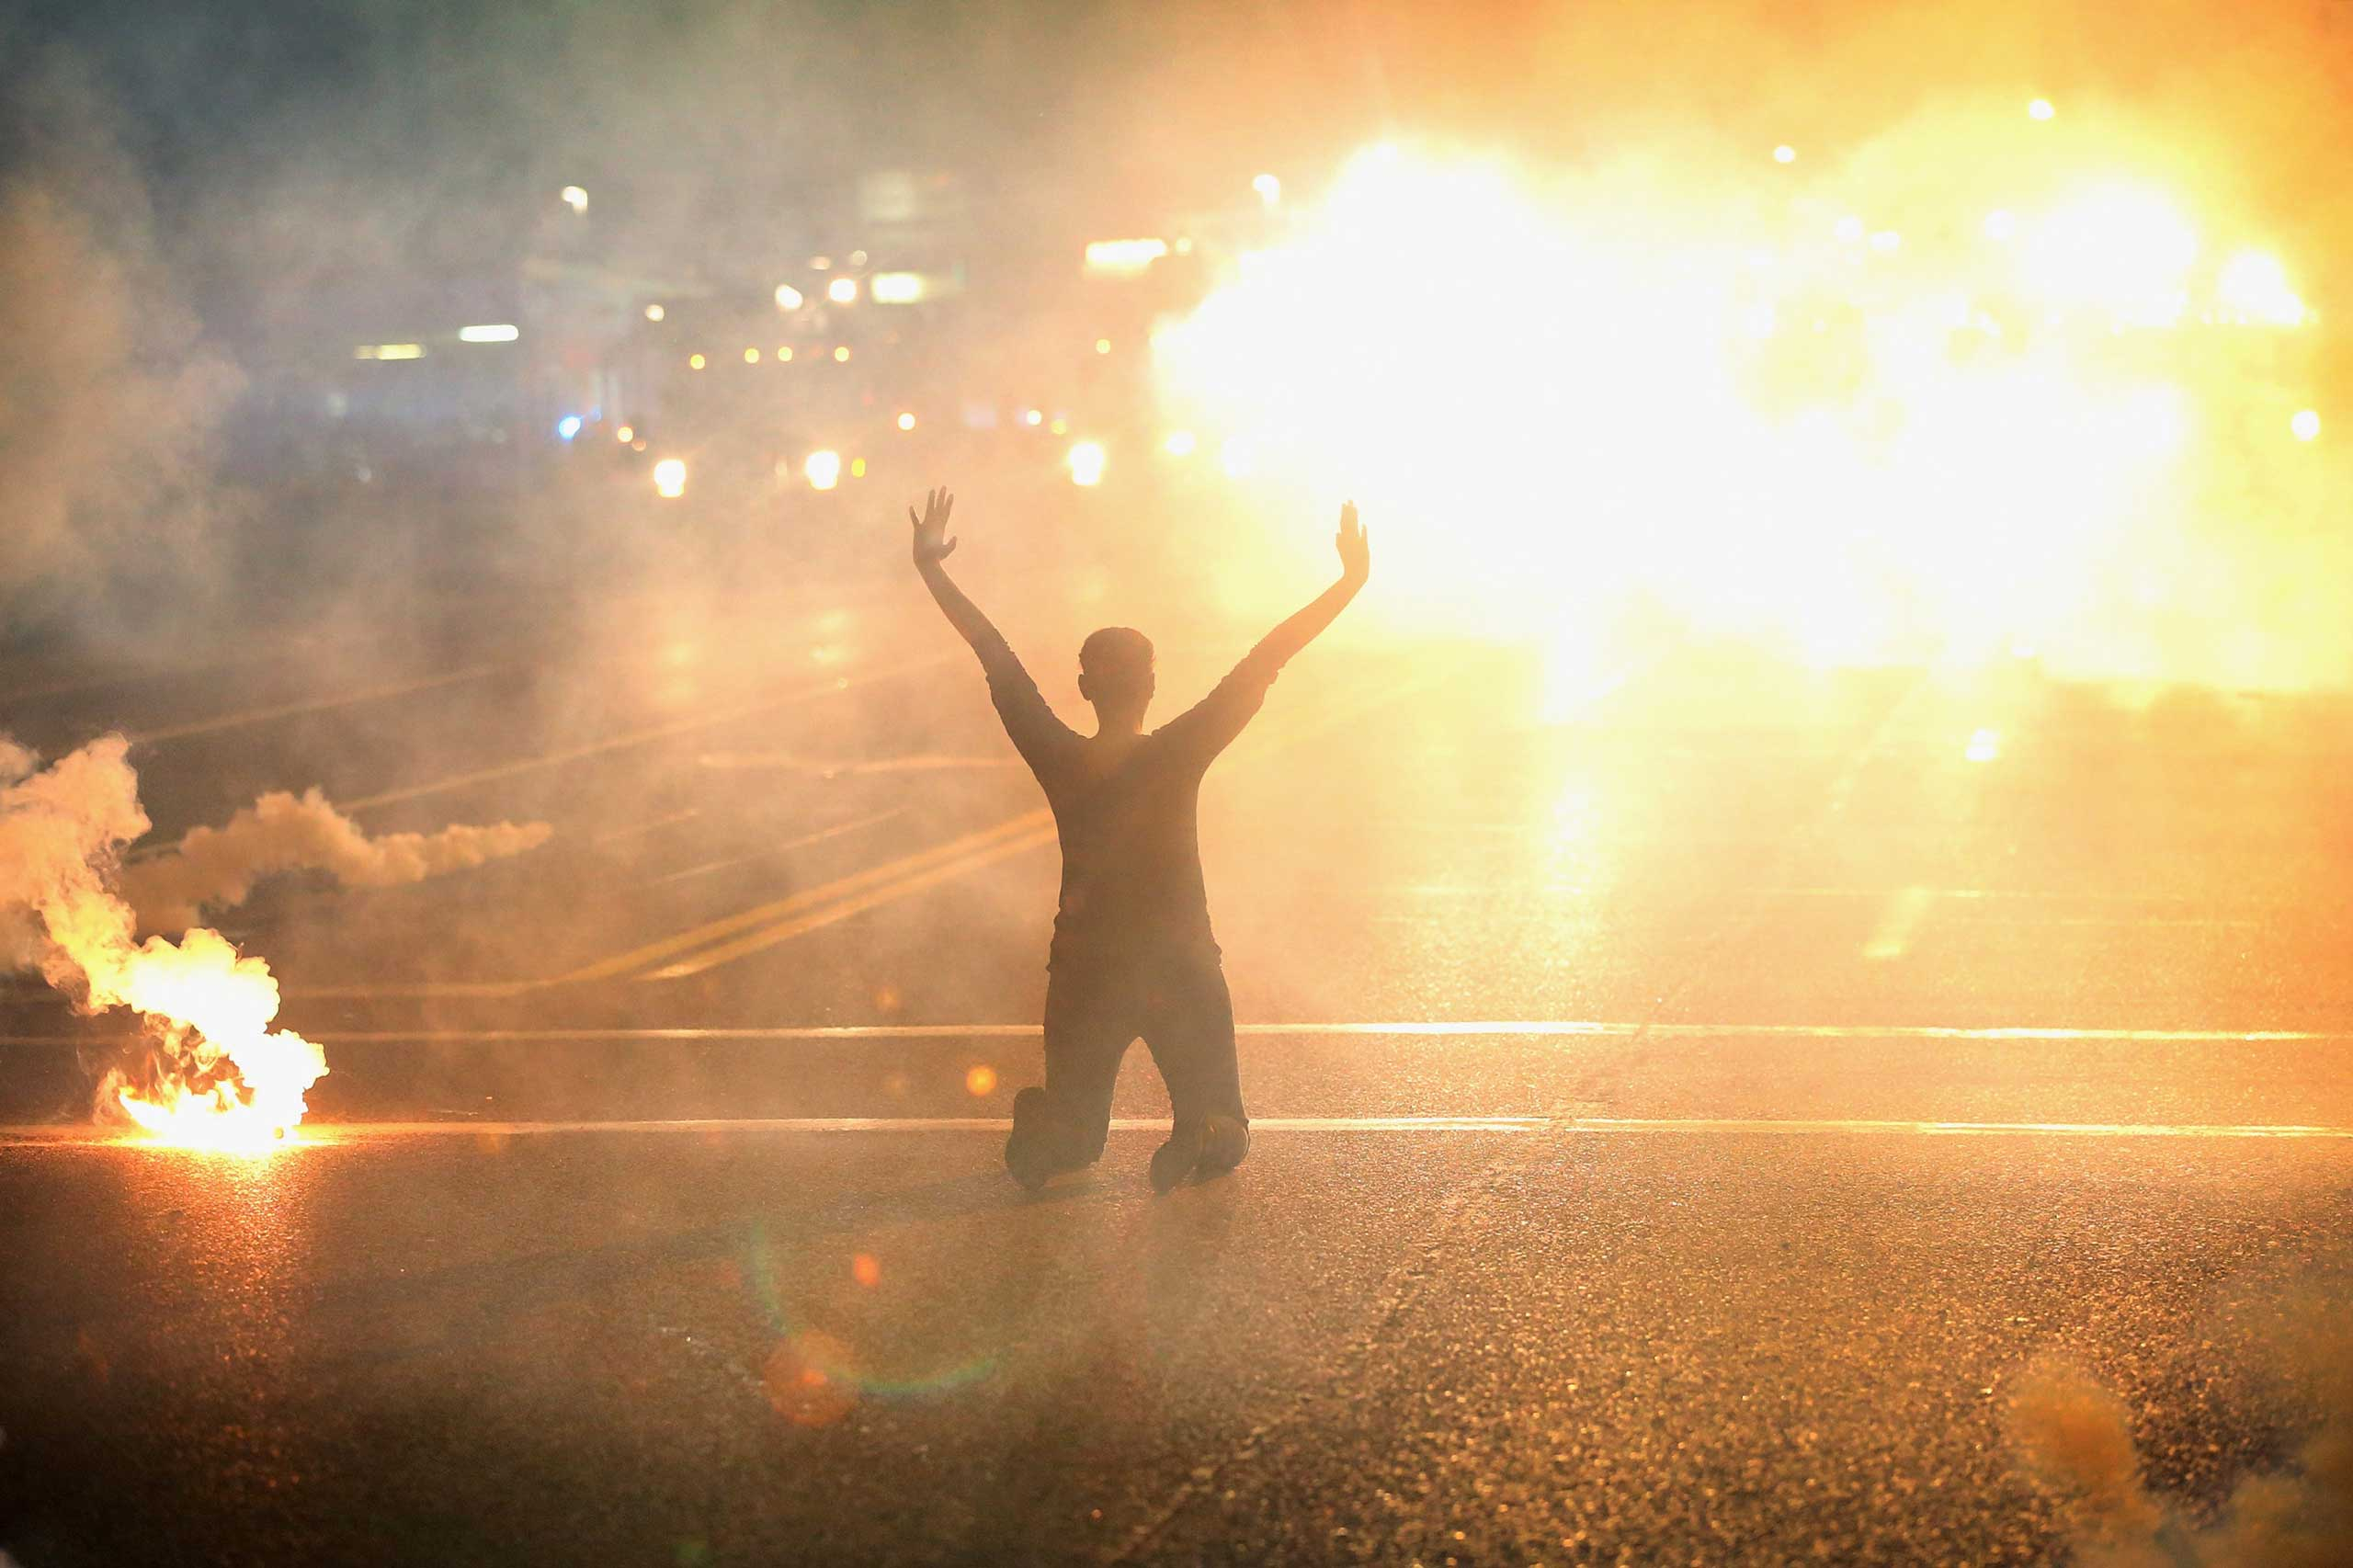 United States: Protests over the death of unarmed black teenager Michael BrownTear gas reigns down on a woman kneeling in the street with her hands in the air after a demonstration over the killing of teenager Michael Brown by a Ferguson police officer on  Aug. 17, 2014 in Ferguson.